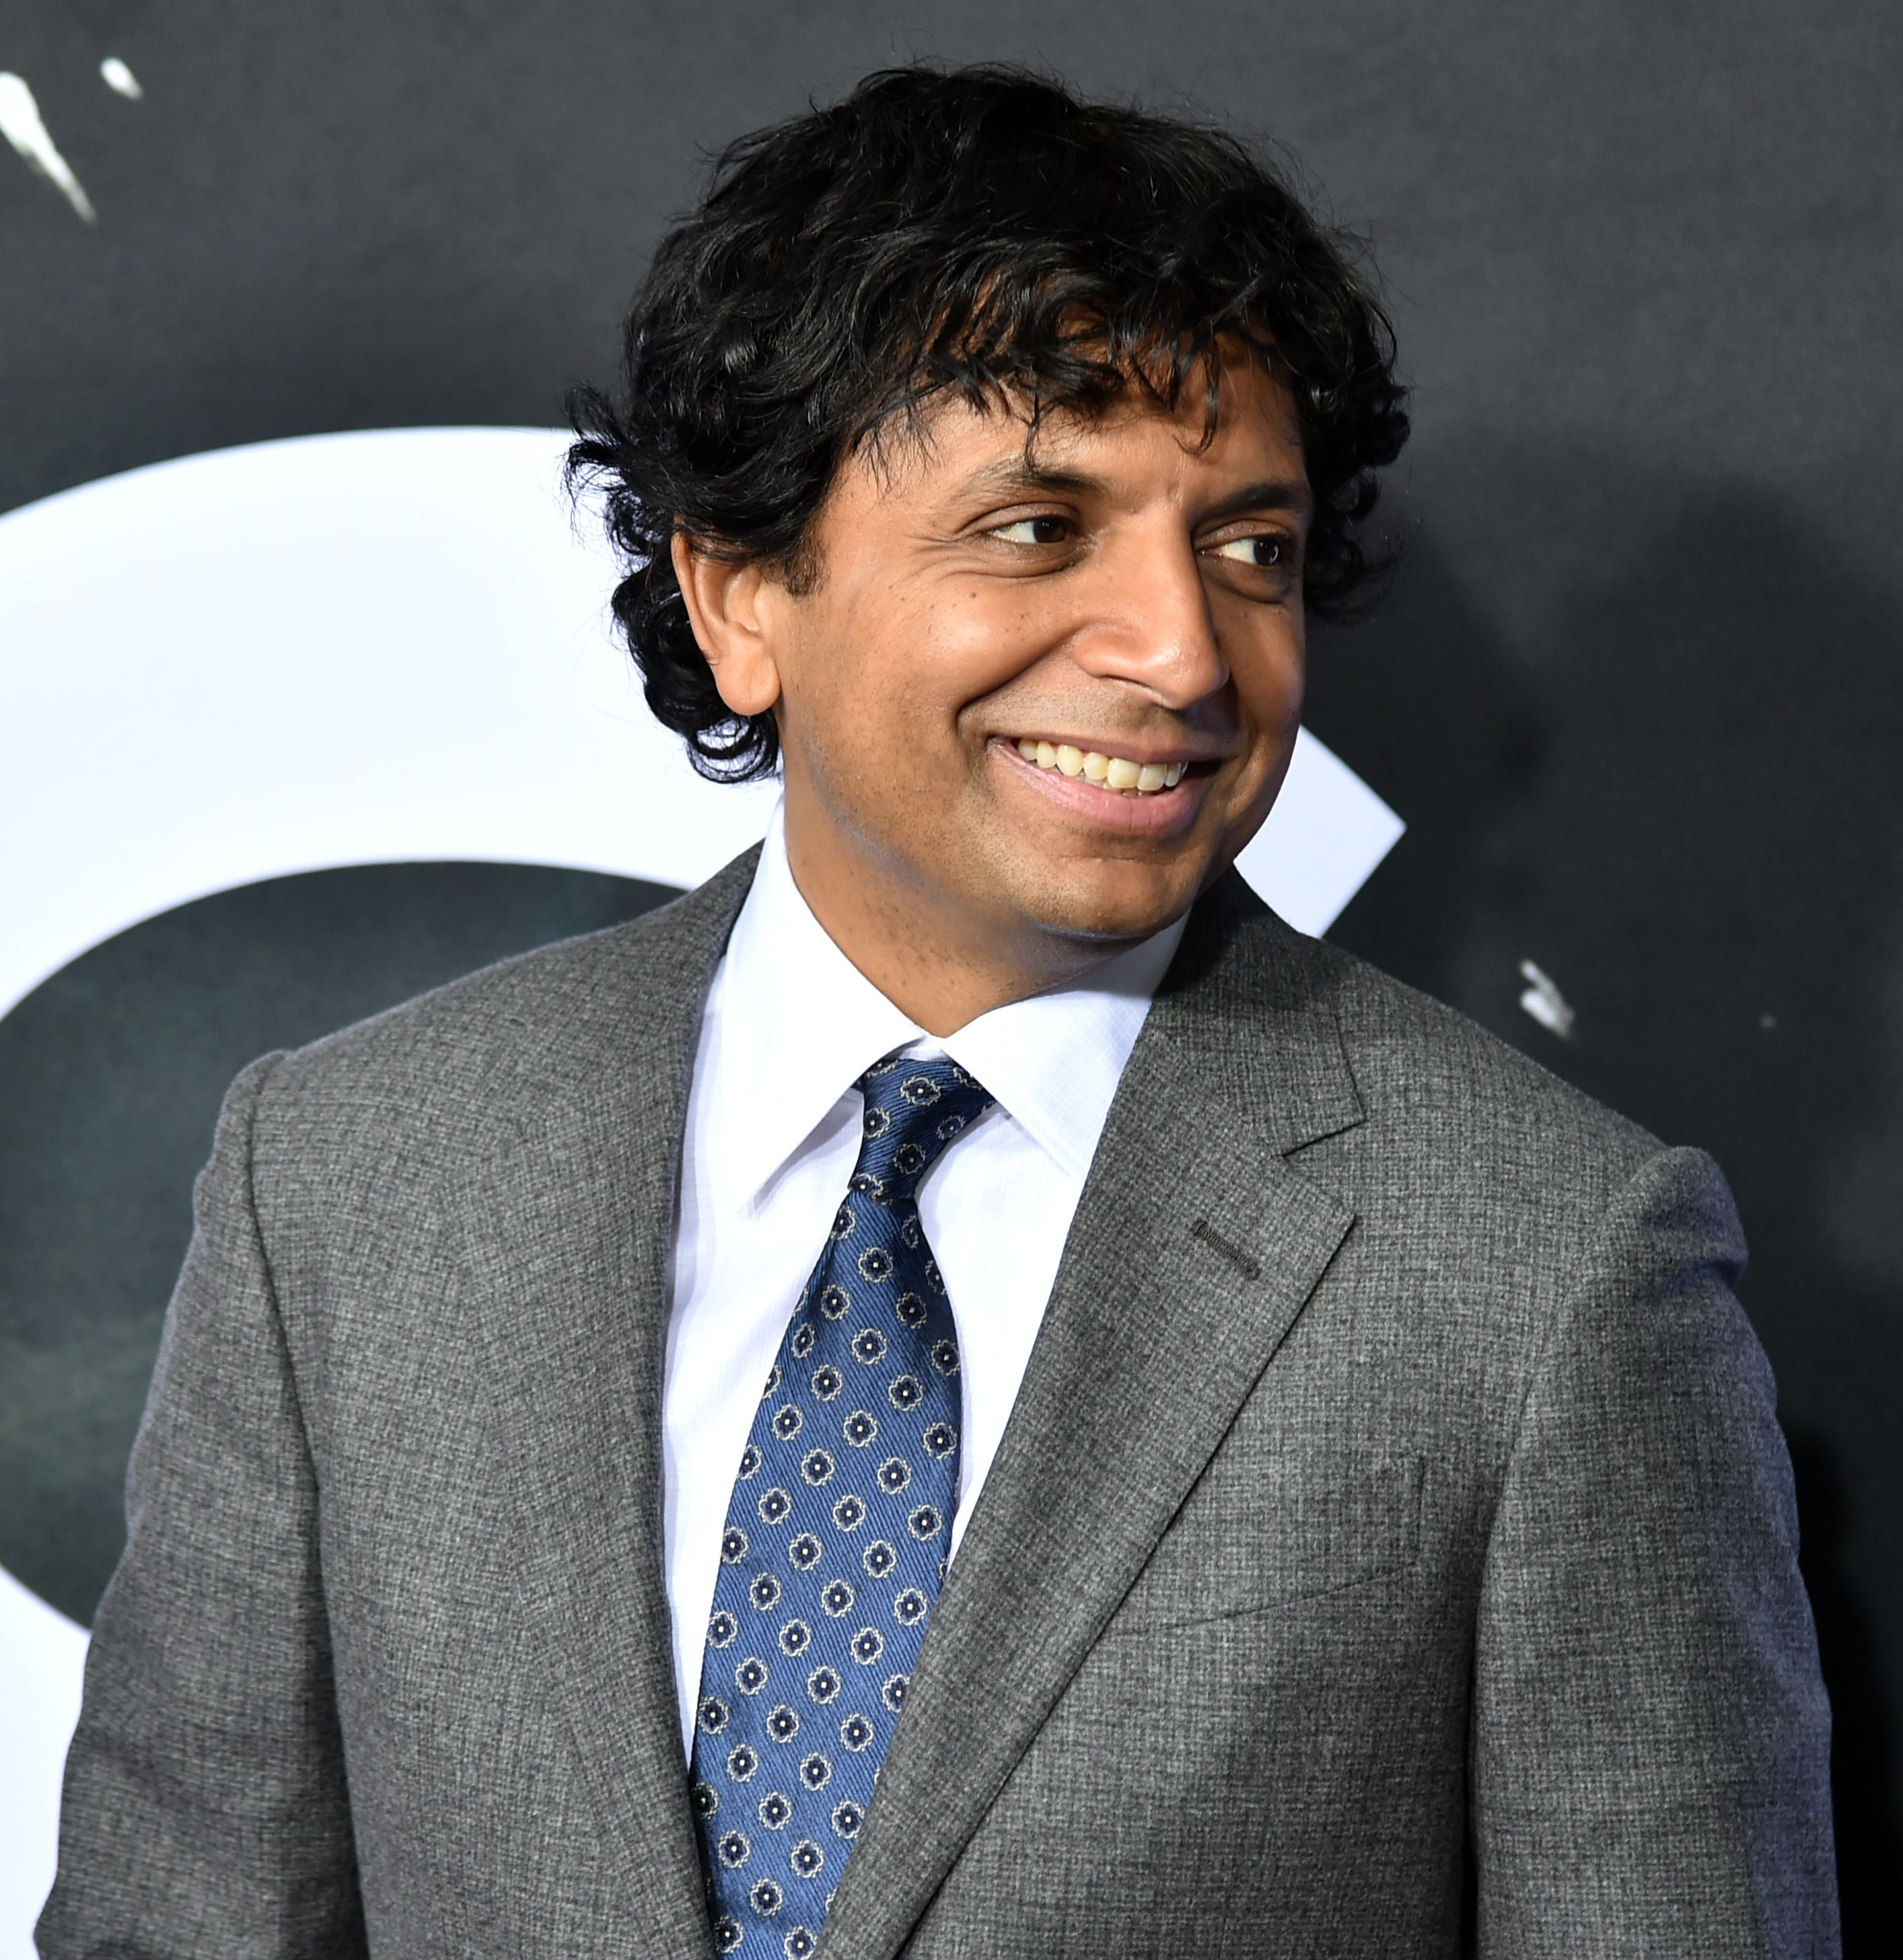 M. Night Shyamalan Says Bad Reviews of 'Glass' Made Him Cry